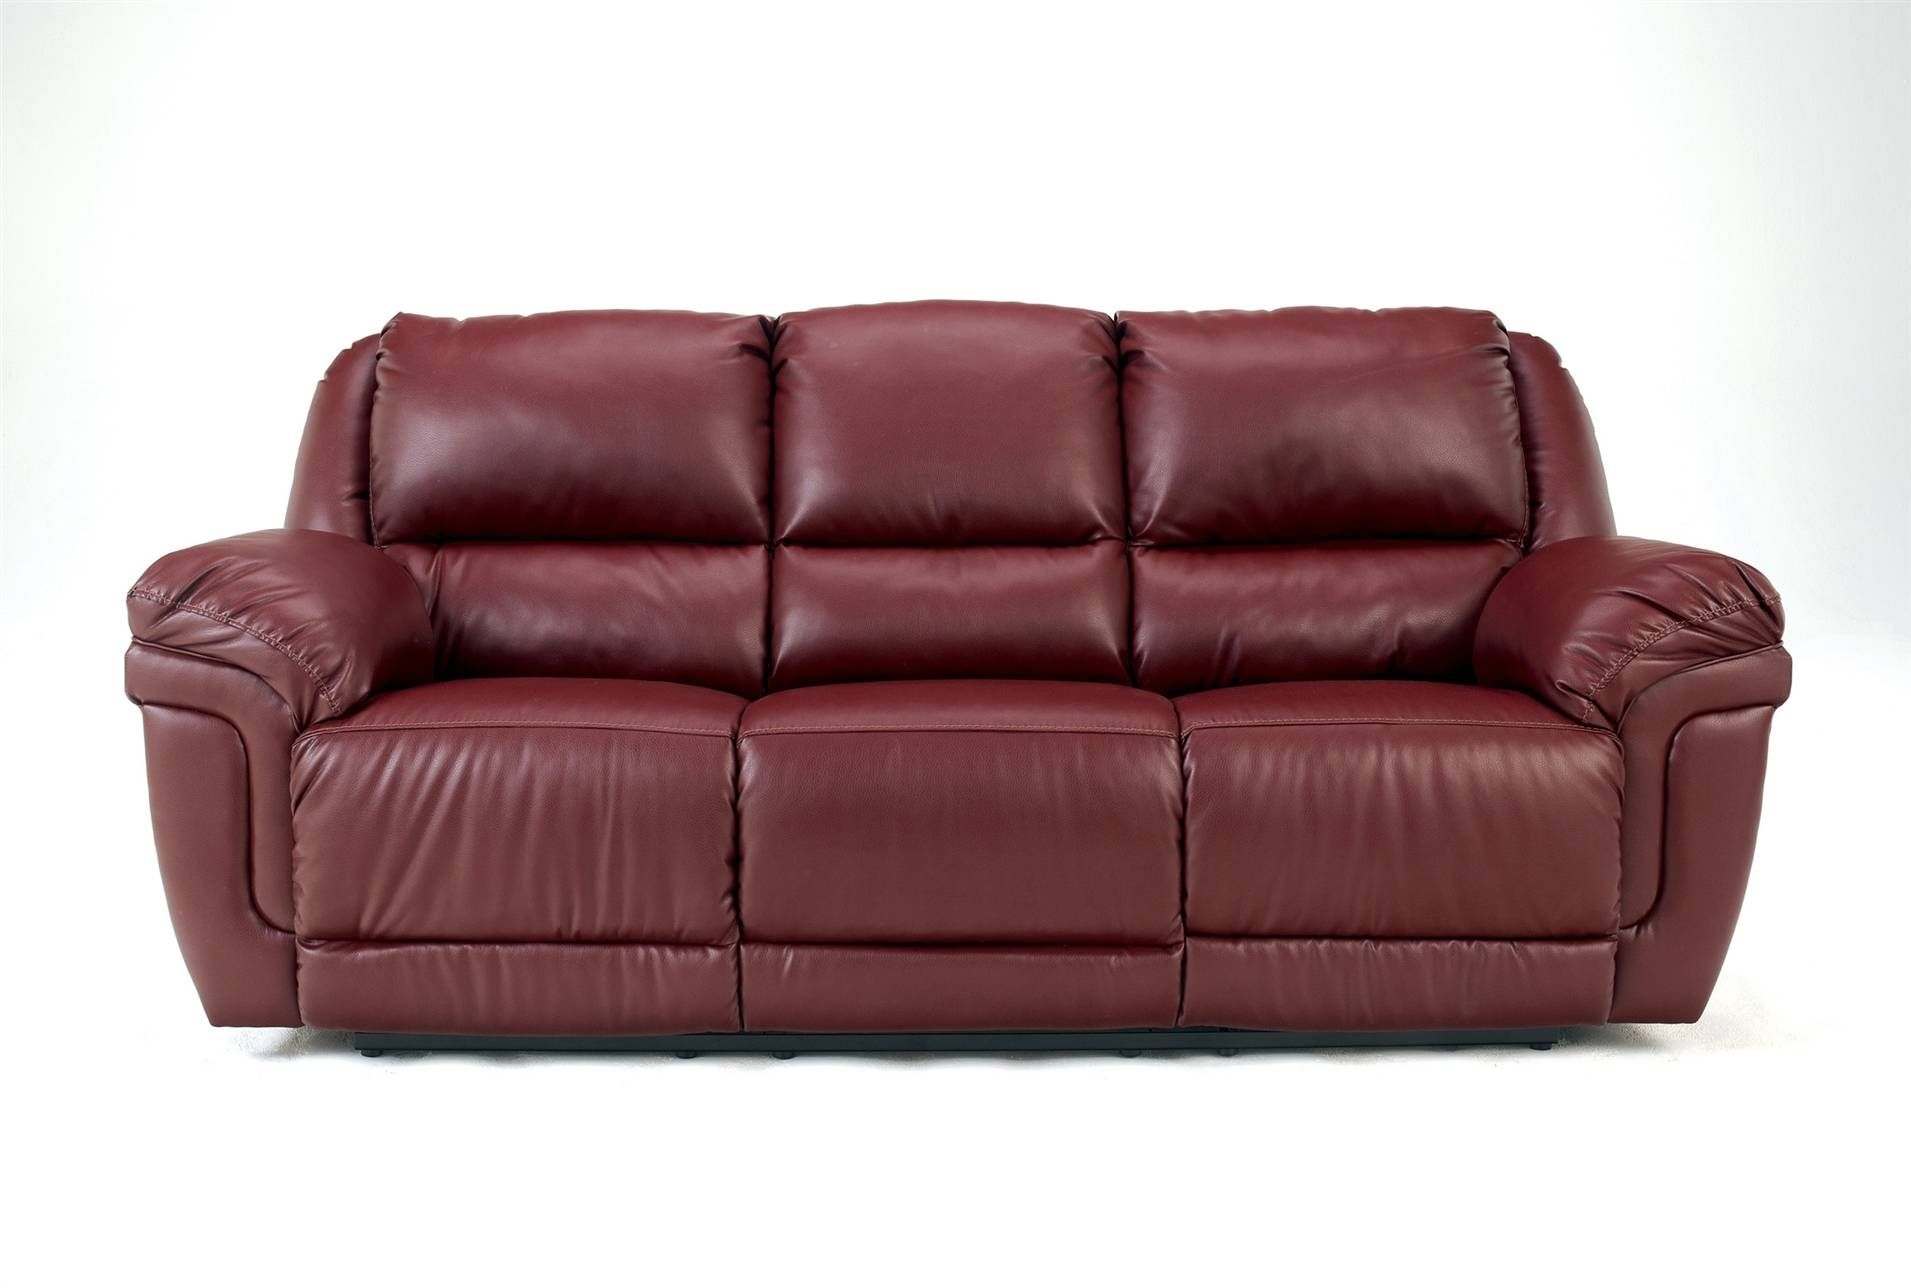 Astonishing Magic Red Reclining Sofa W Ddt Bello Decor Sofa Caraccident5 Cool Chair Designs And Ideas Caraccident5Info